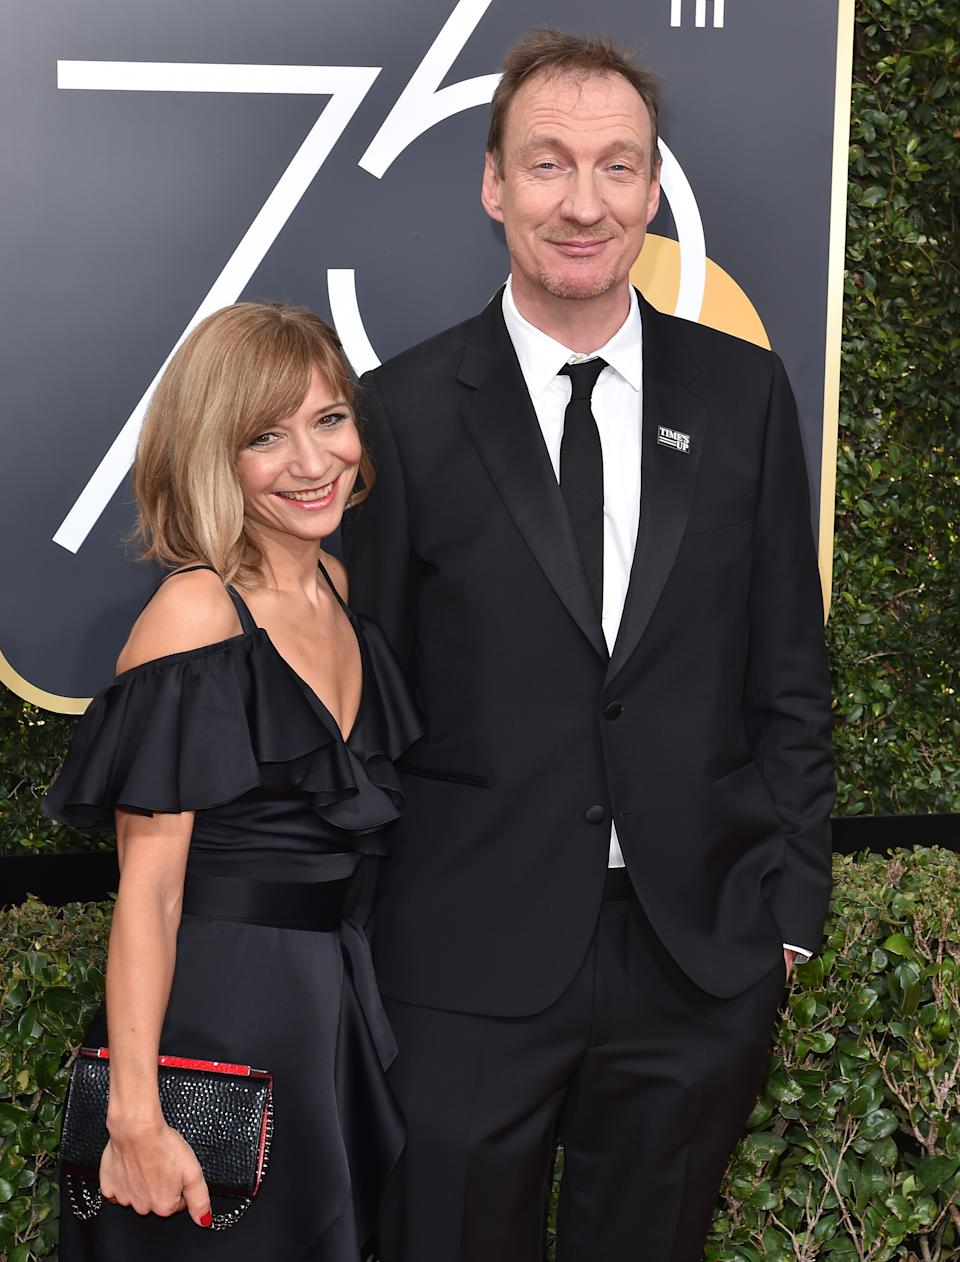 BEVERLY HILLS, CA - JANUARY 07: Actor David Thewlis (R) and guest attend the 75th Annual Golden Globe Awards at The Beverly Hilton Hotel on January 7, 2018 in Beverly Hills, California. (Photo by Axelle/Bauer-Griffin/FilmMagic)